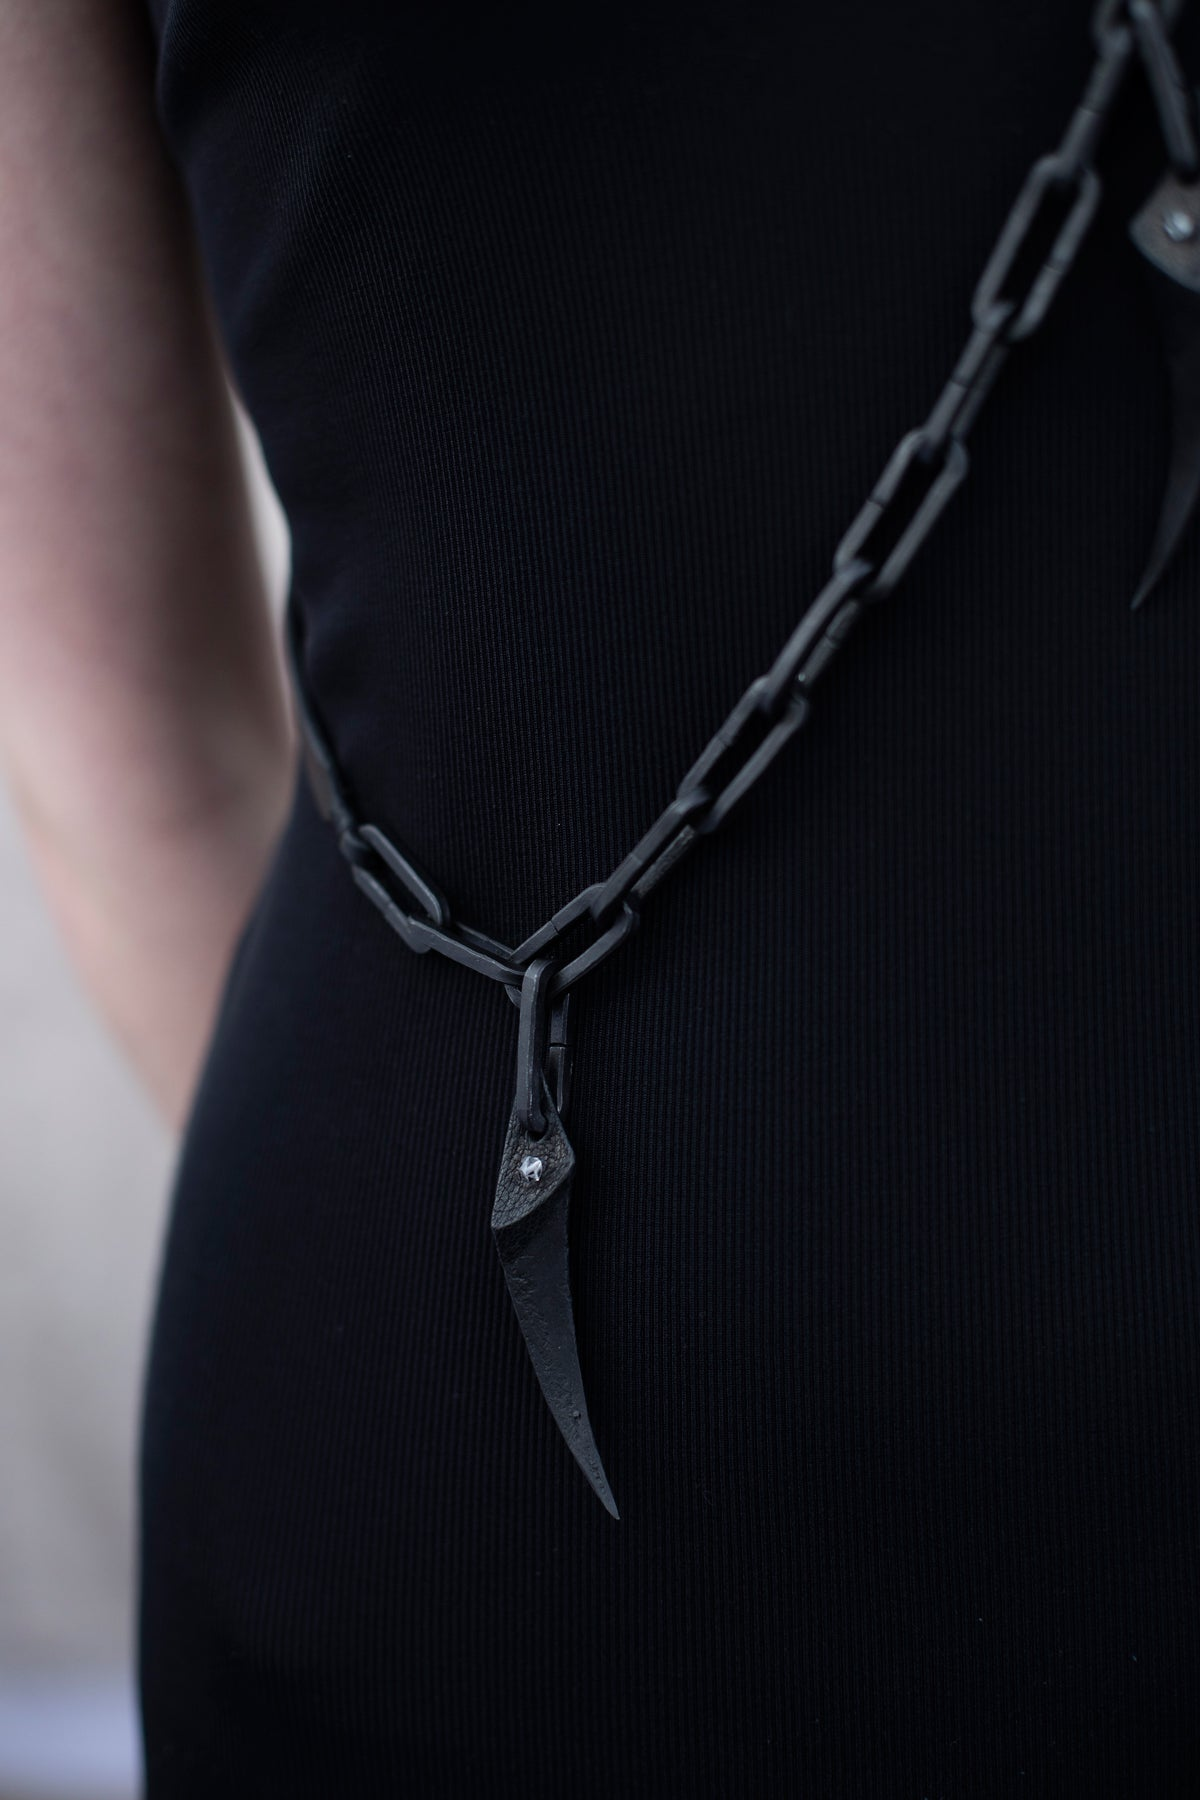 IRON CLAW HARNESS